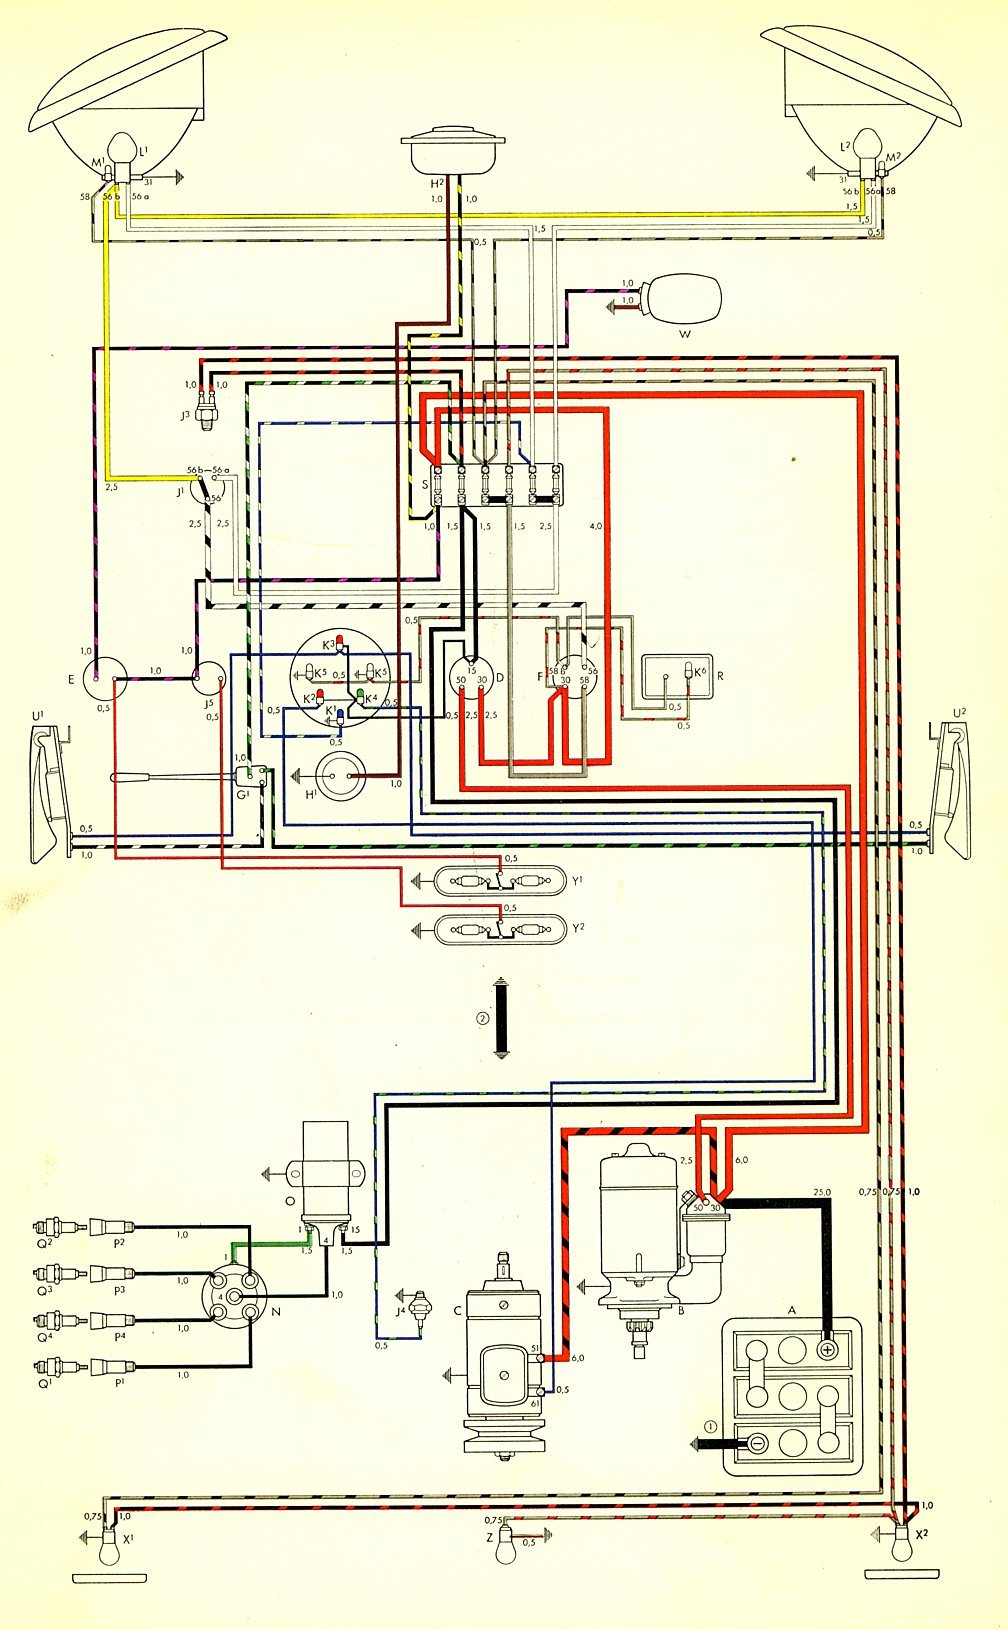 bus_59 thesamba com type 2 wiring diagrams find wiring diagram for 87 ford f 150 at honlapkeszites.co